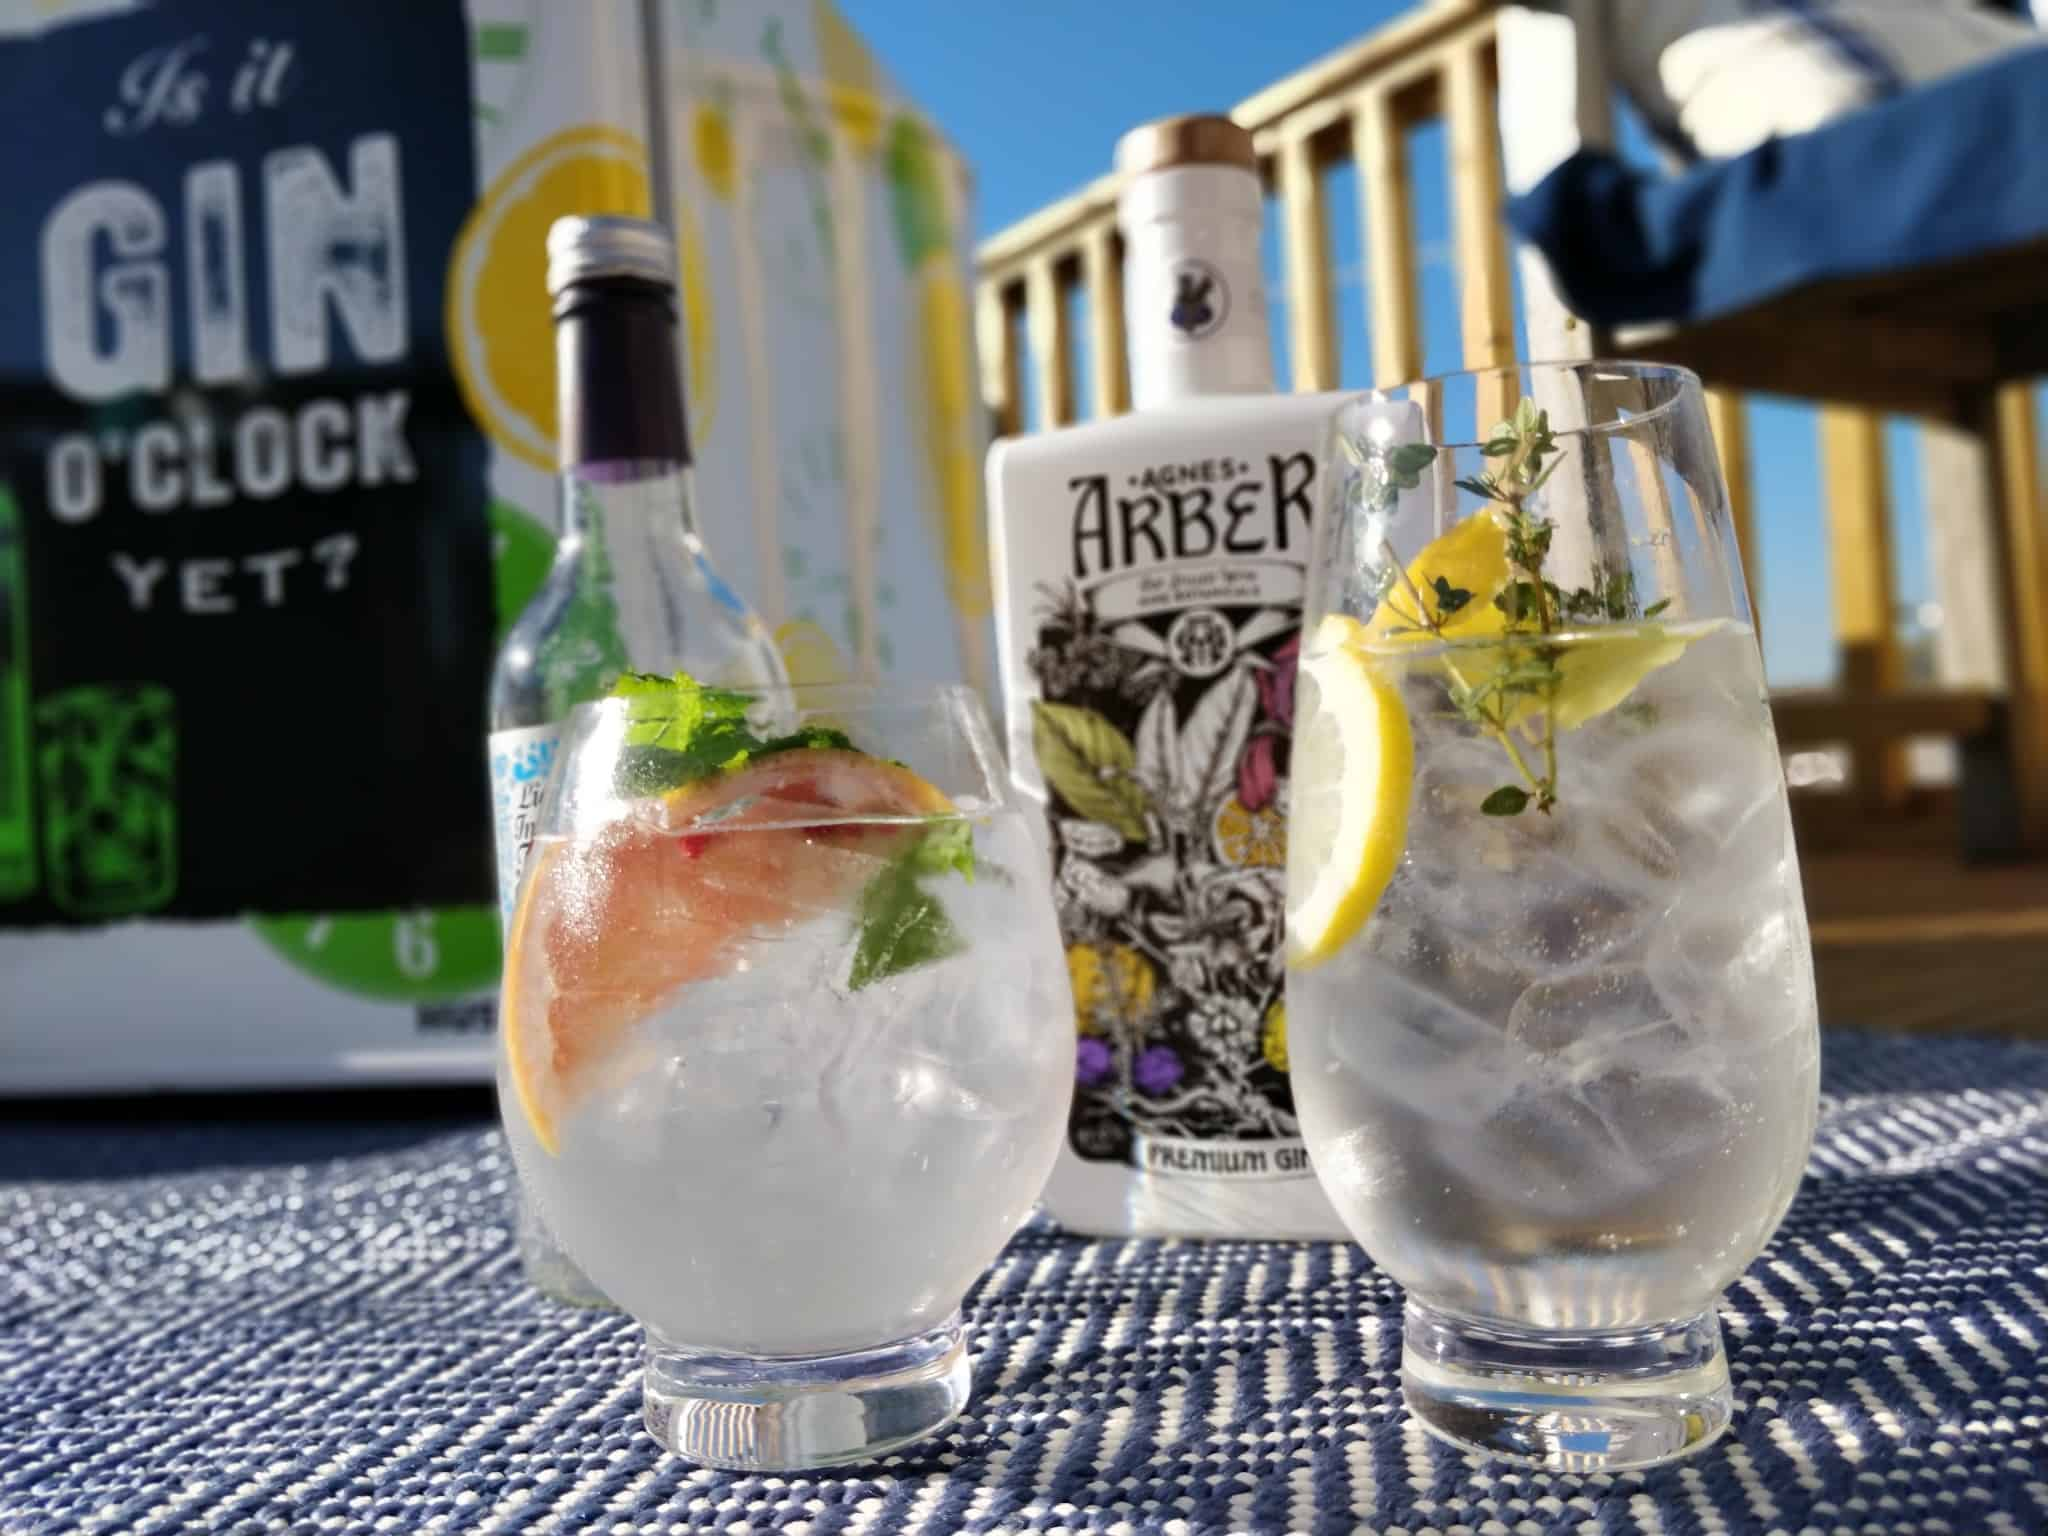 Making Gin Cocktails - Husky Gin Fridge, Dartington Crystal glasses and Agnes Arber Gin